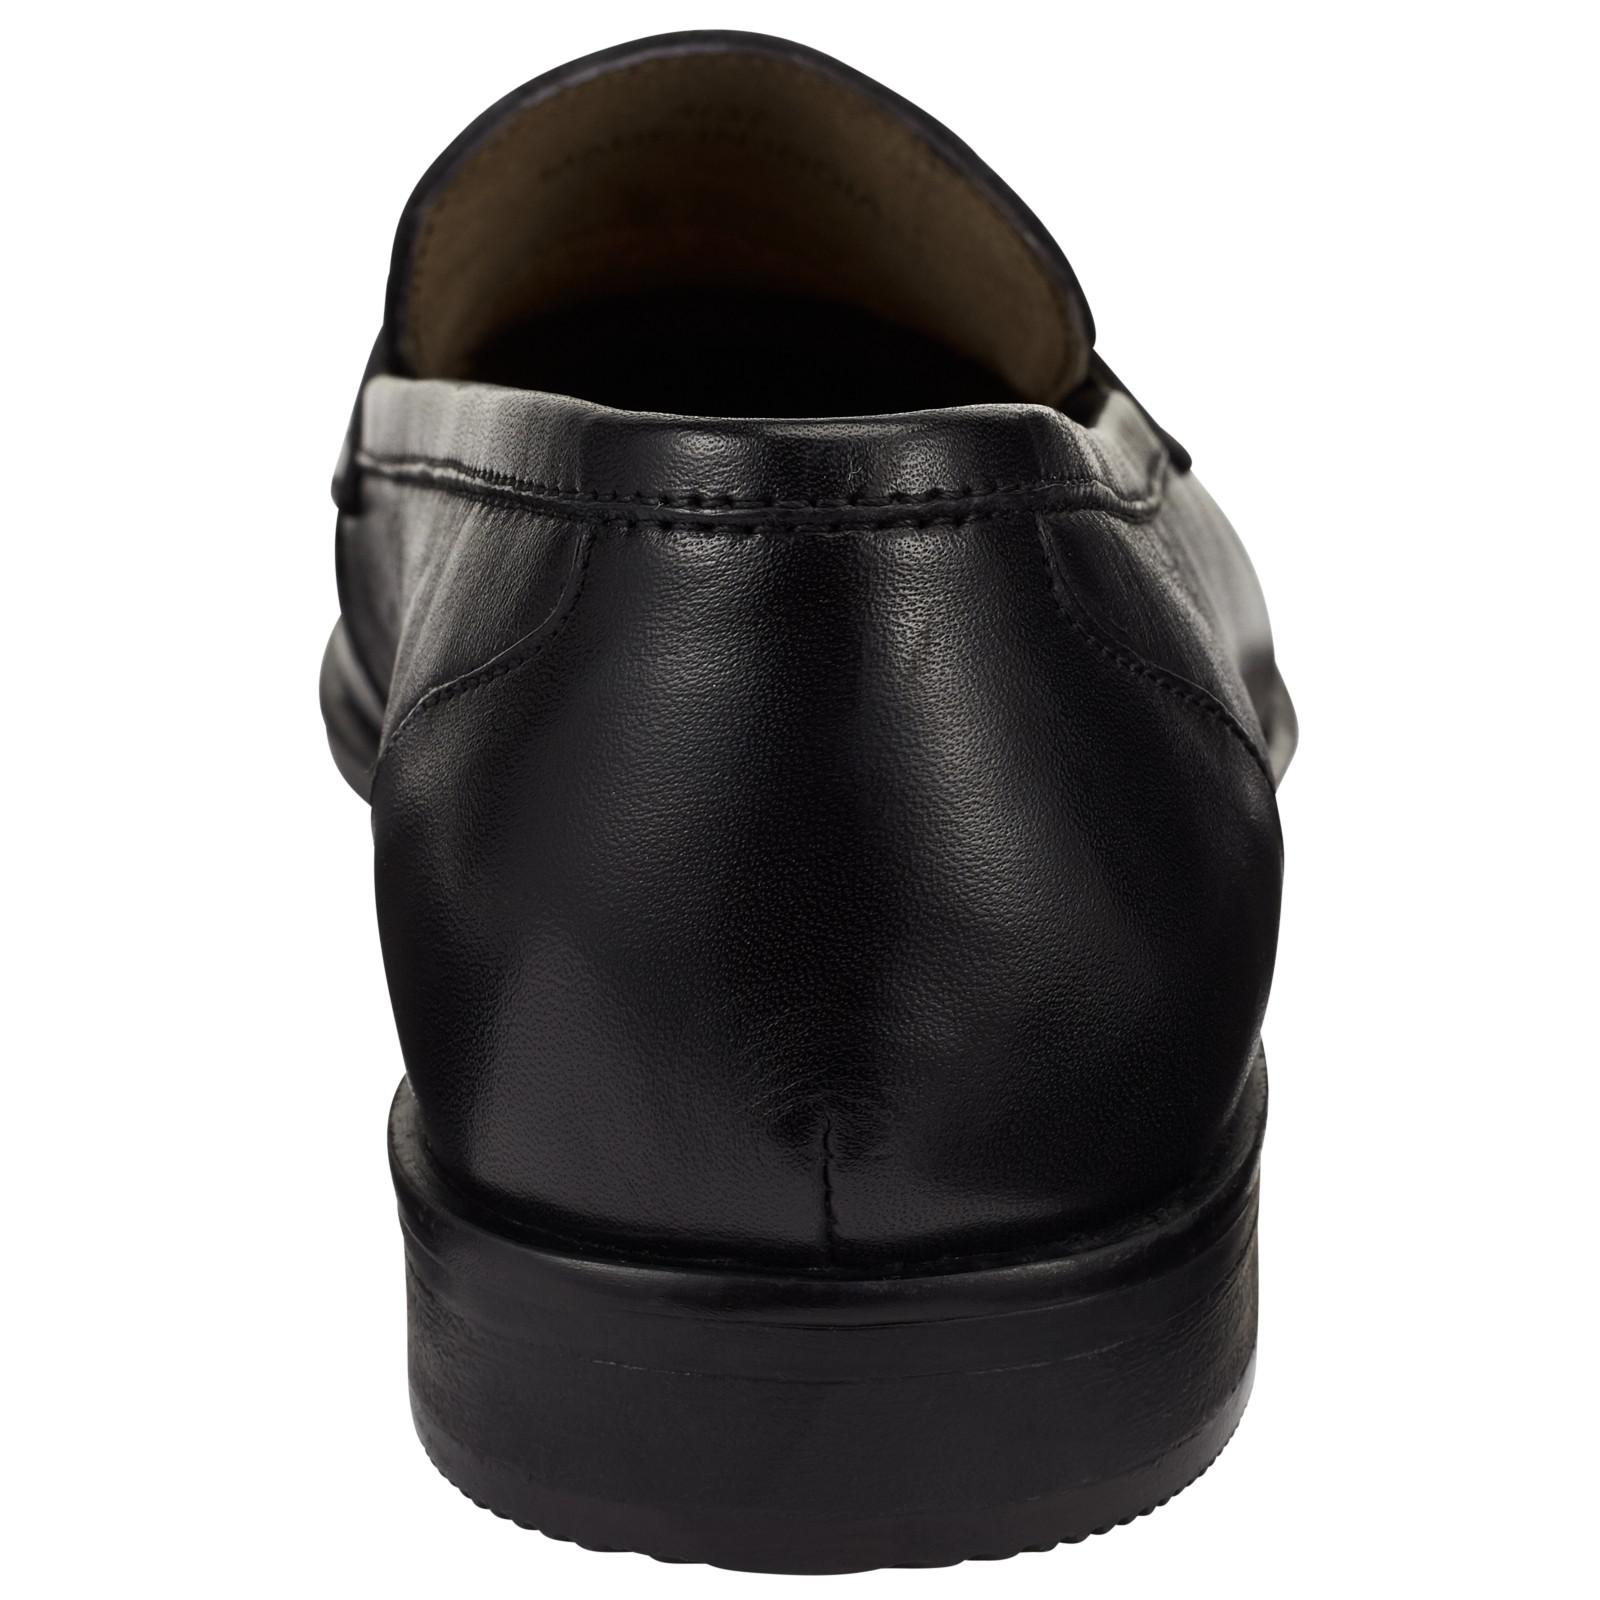 John Lewis Leather Graye Loafers in Black Leather (Black) for Men